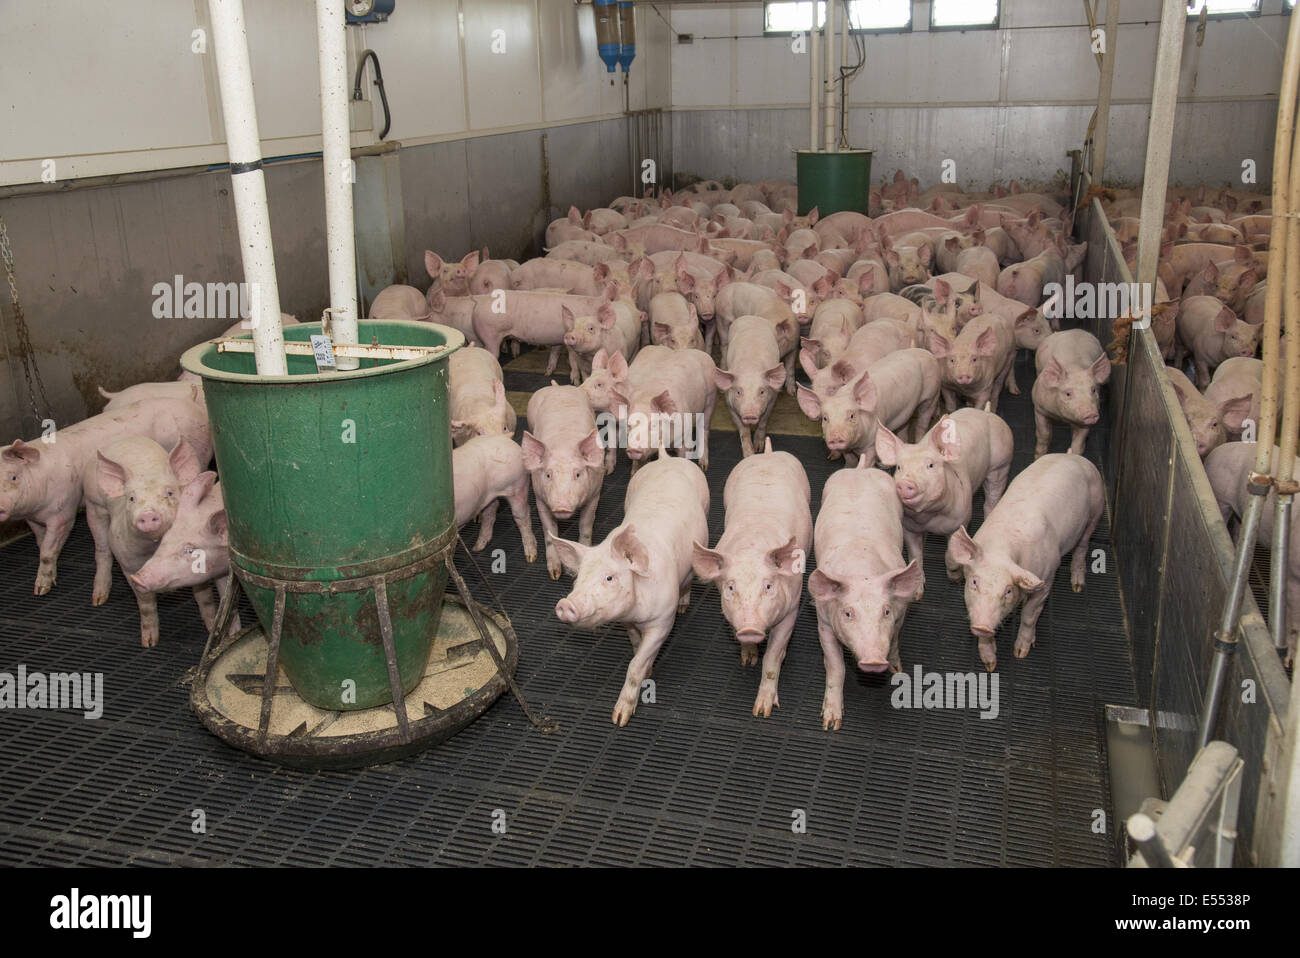 Pig Farming Growing Pigs With Automatic Feeders On Slats